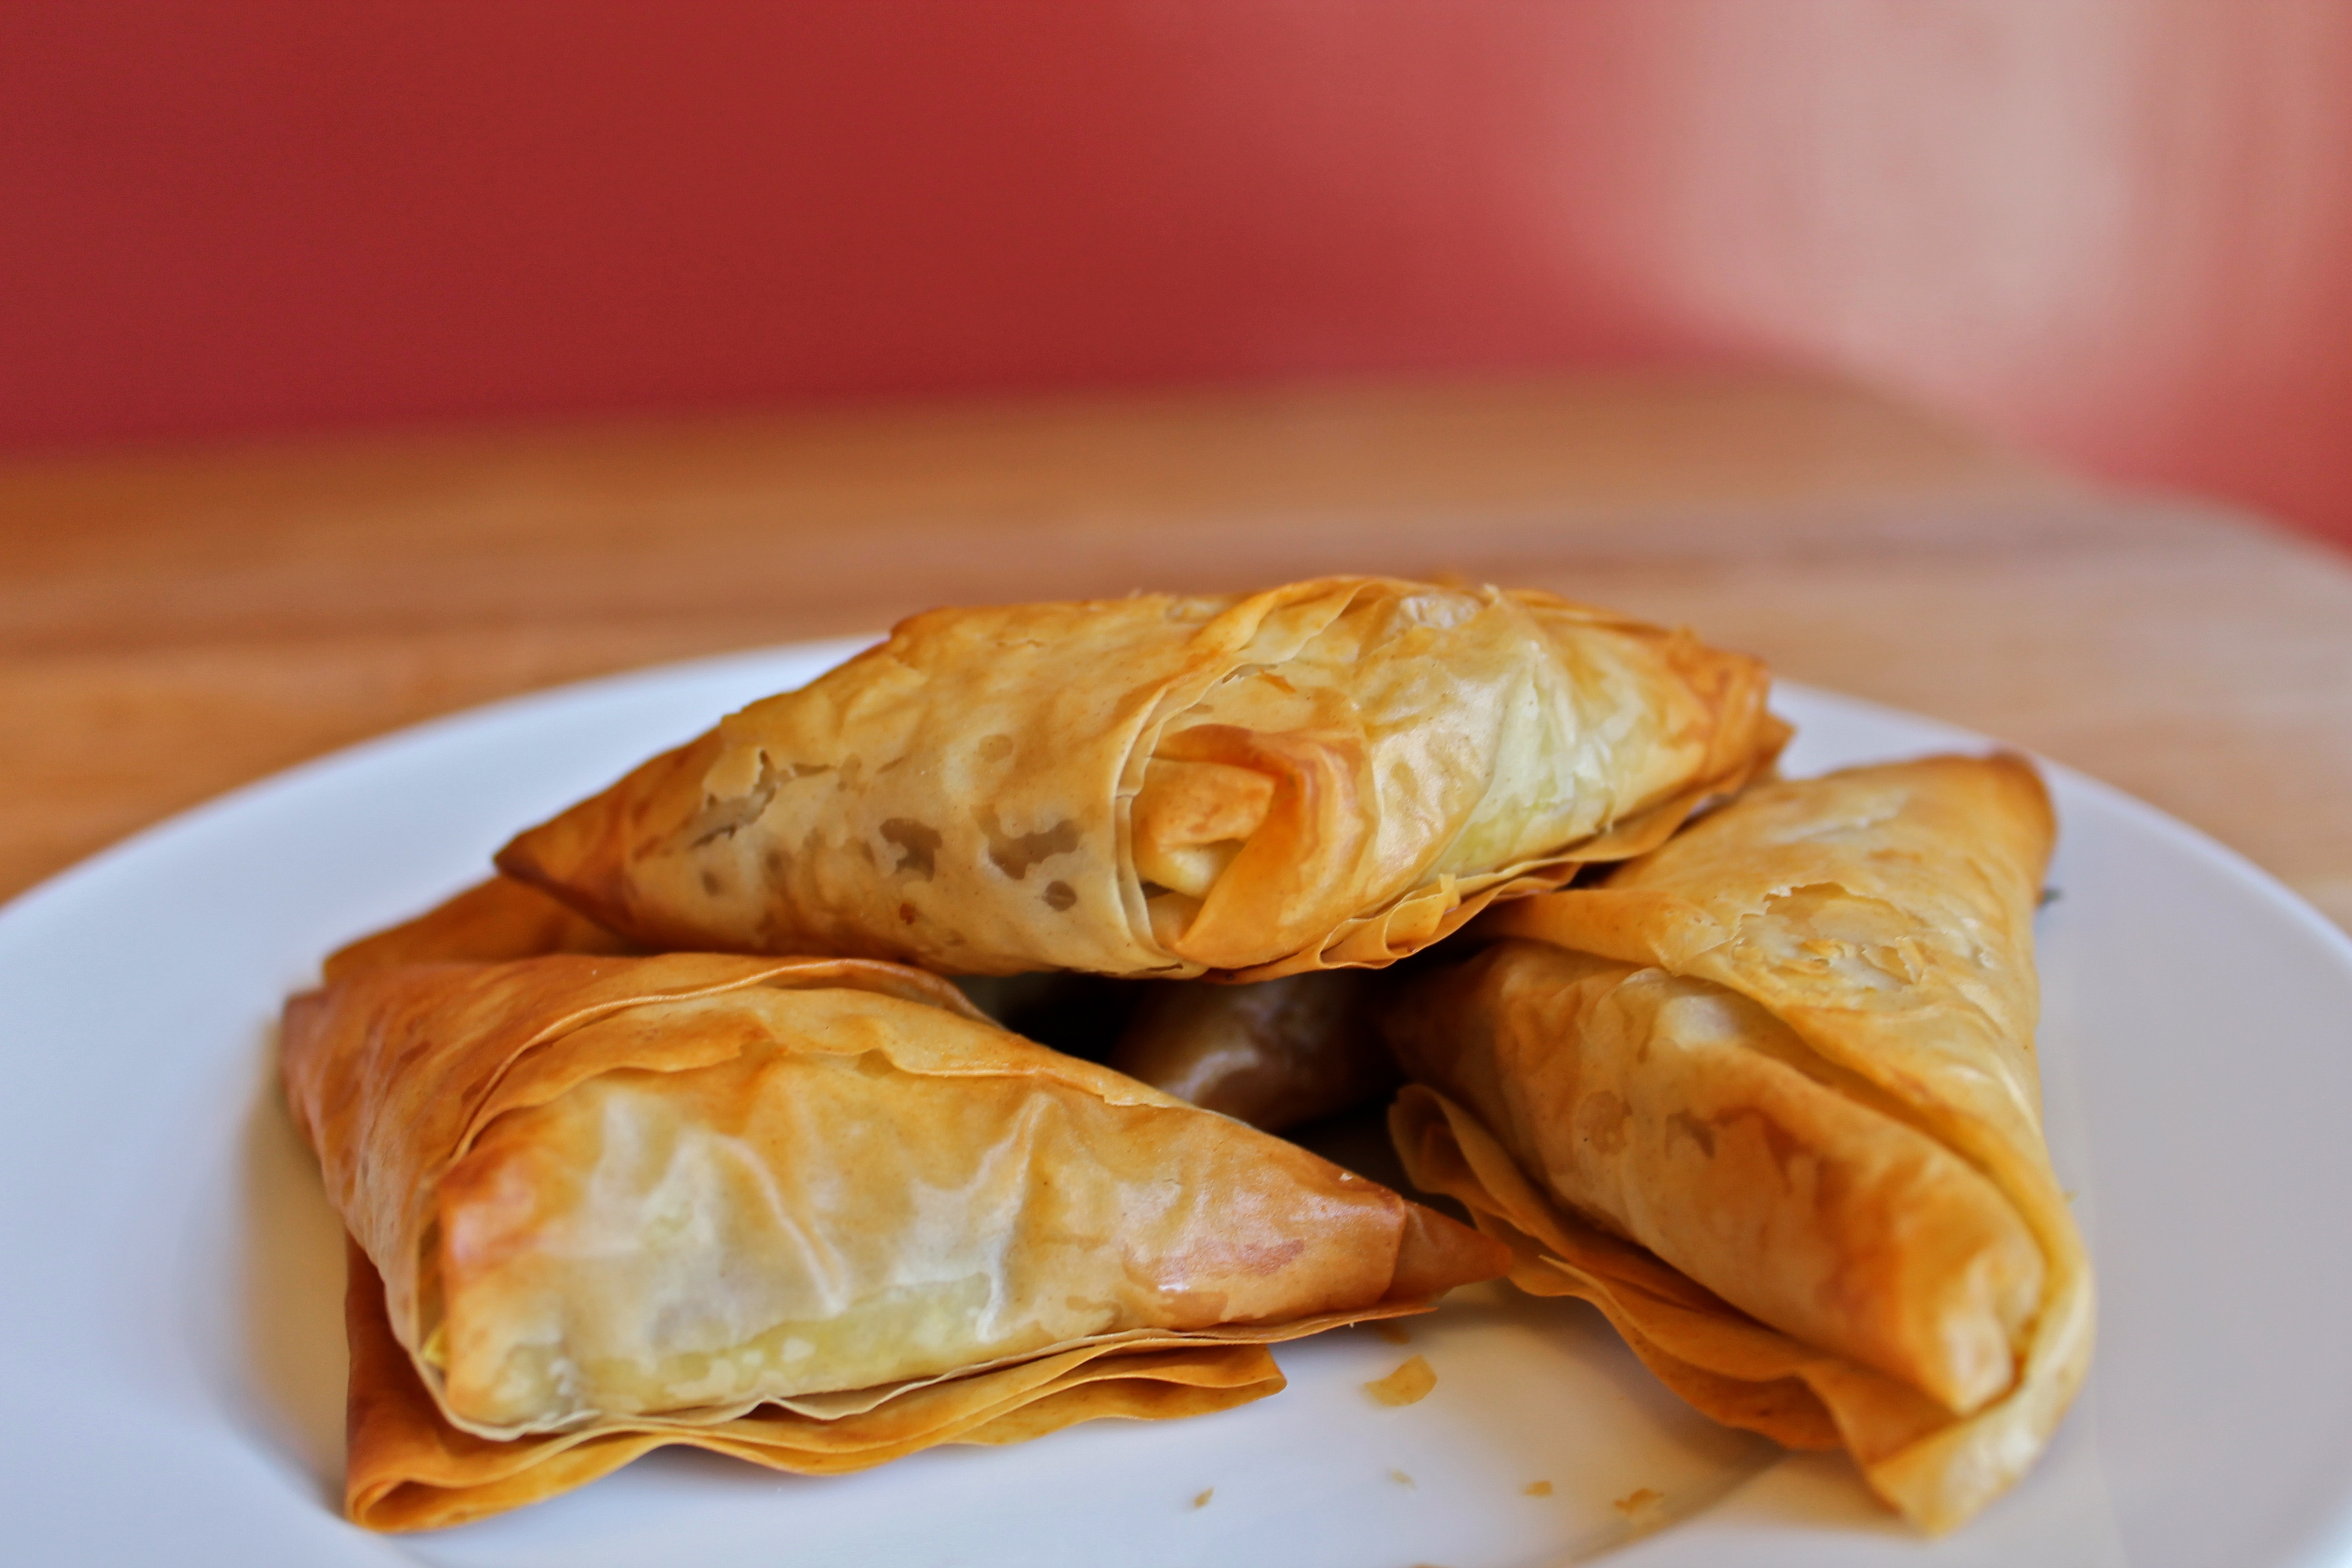 Sweet potato and cauliflower samosas in phyllo savory for Phyllo dough recipes appetizers indian